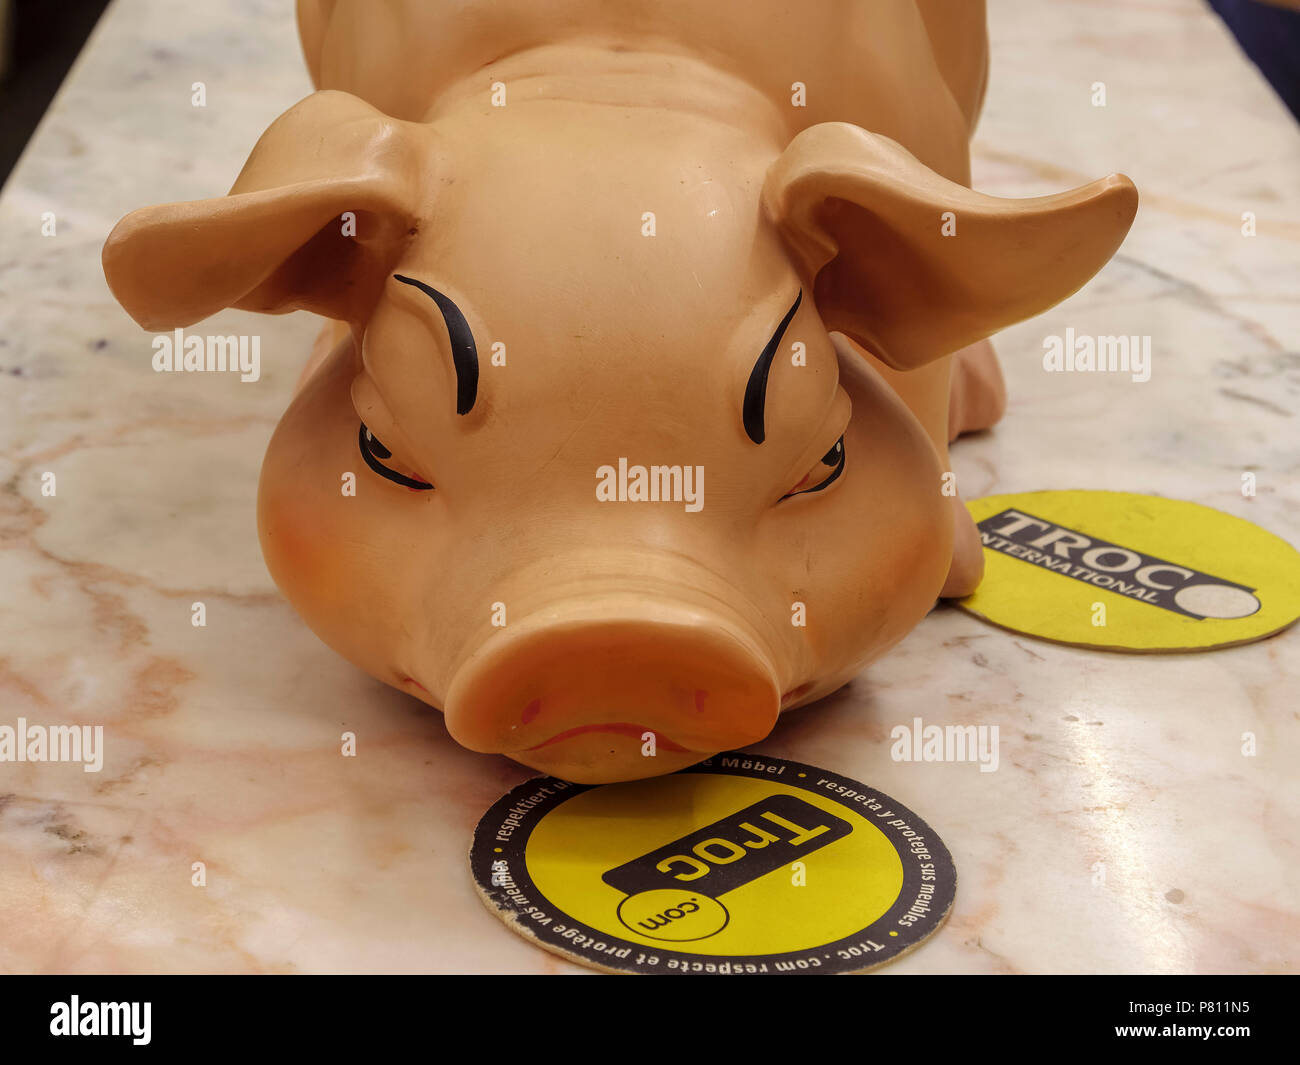 Plastic Pig Troc Second Hand Shop 83 Rue Hollerich Luxembourg Luxembourg City Europe Stock Photo Alamy